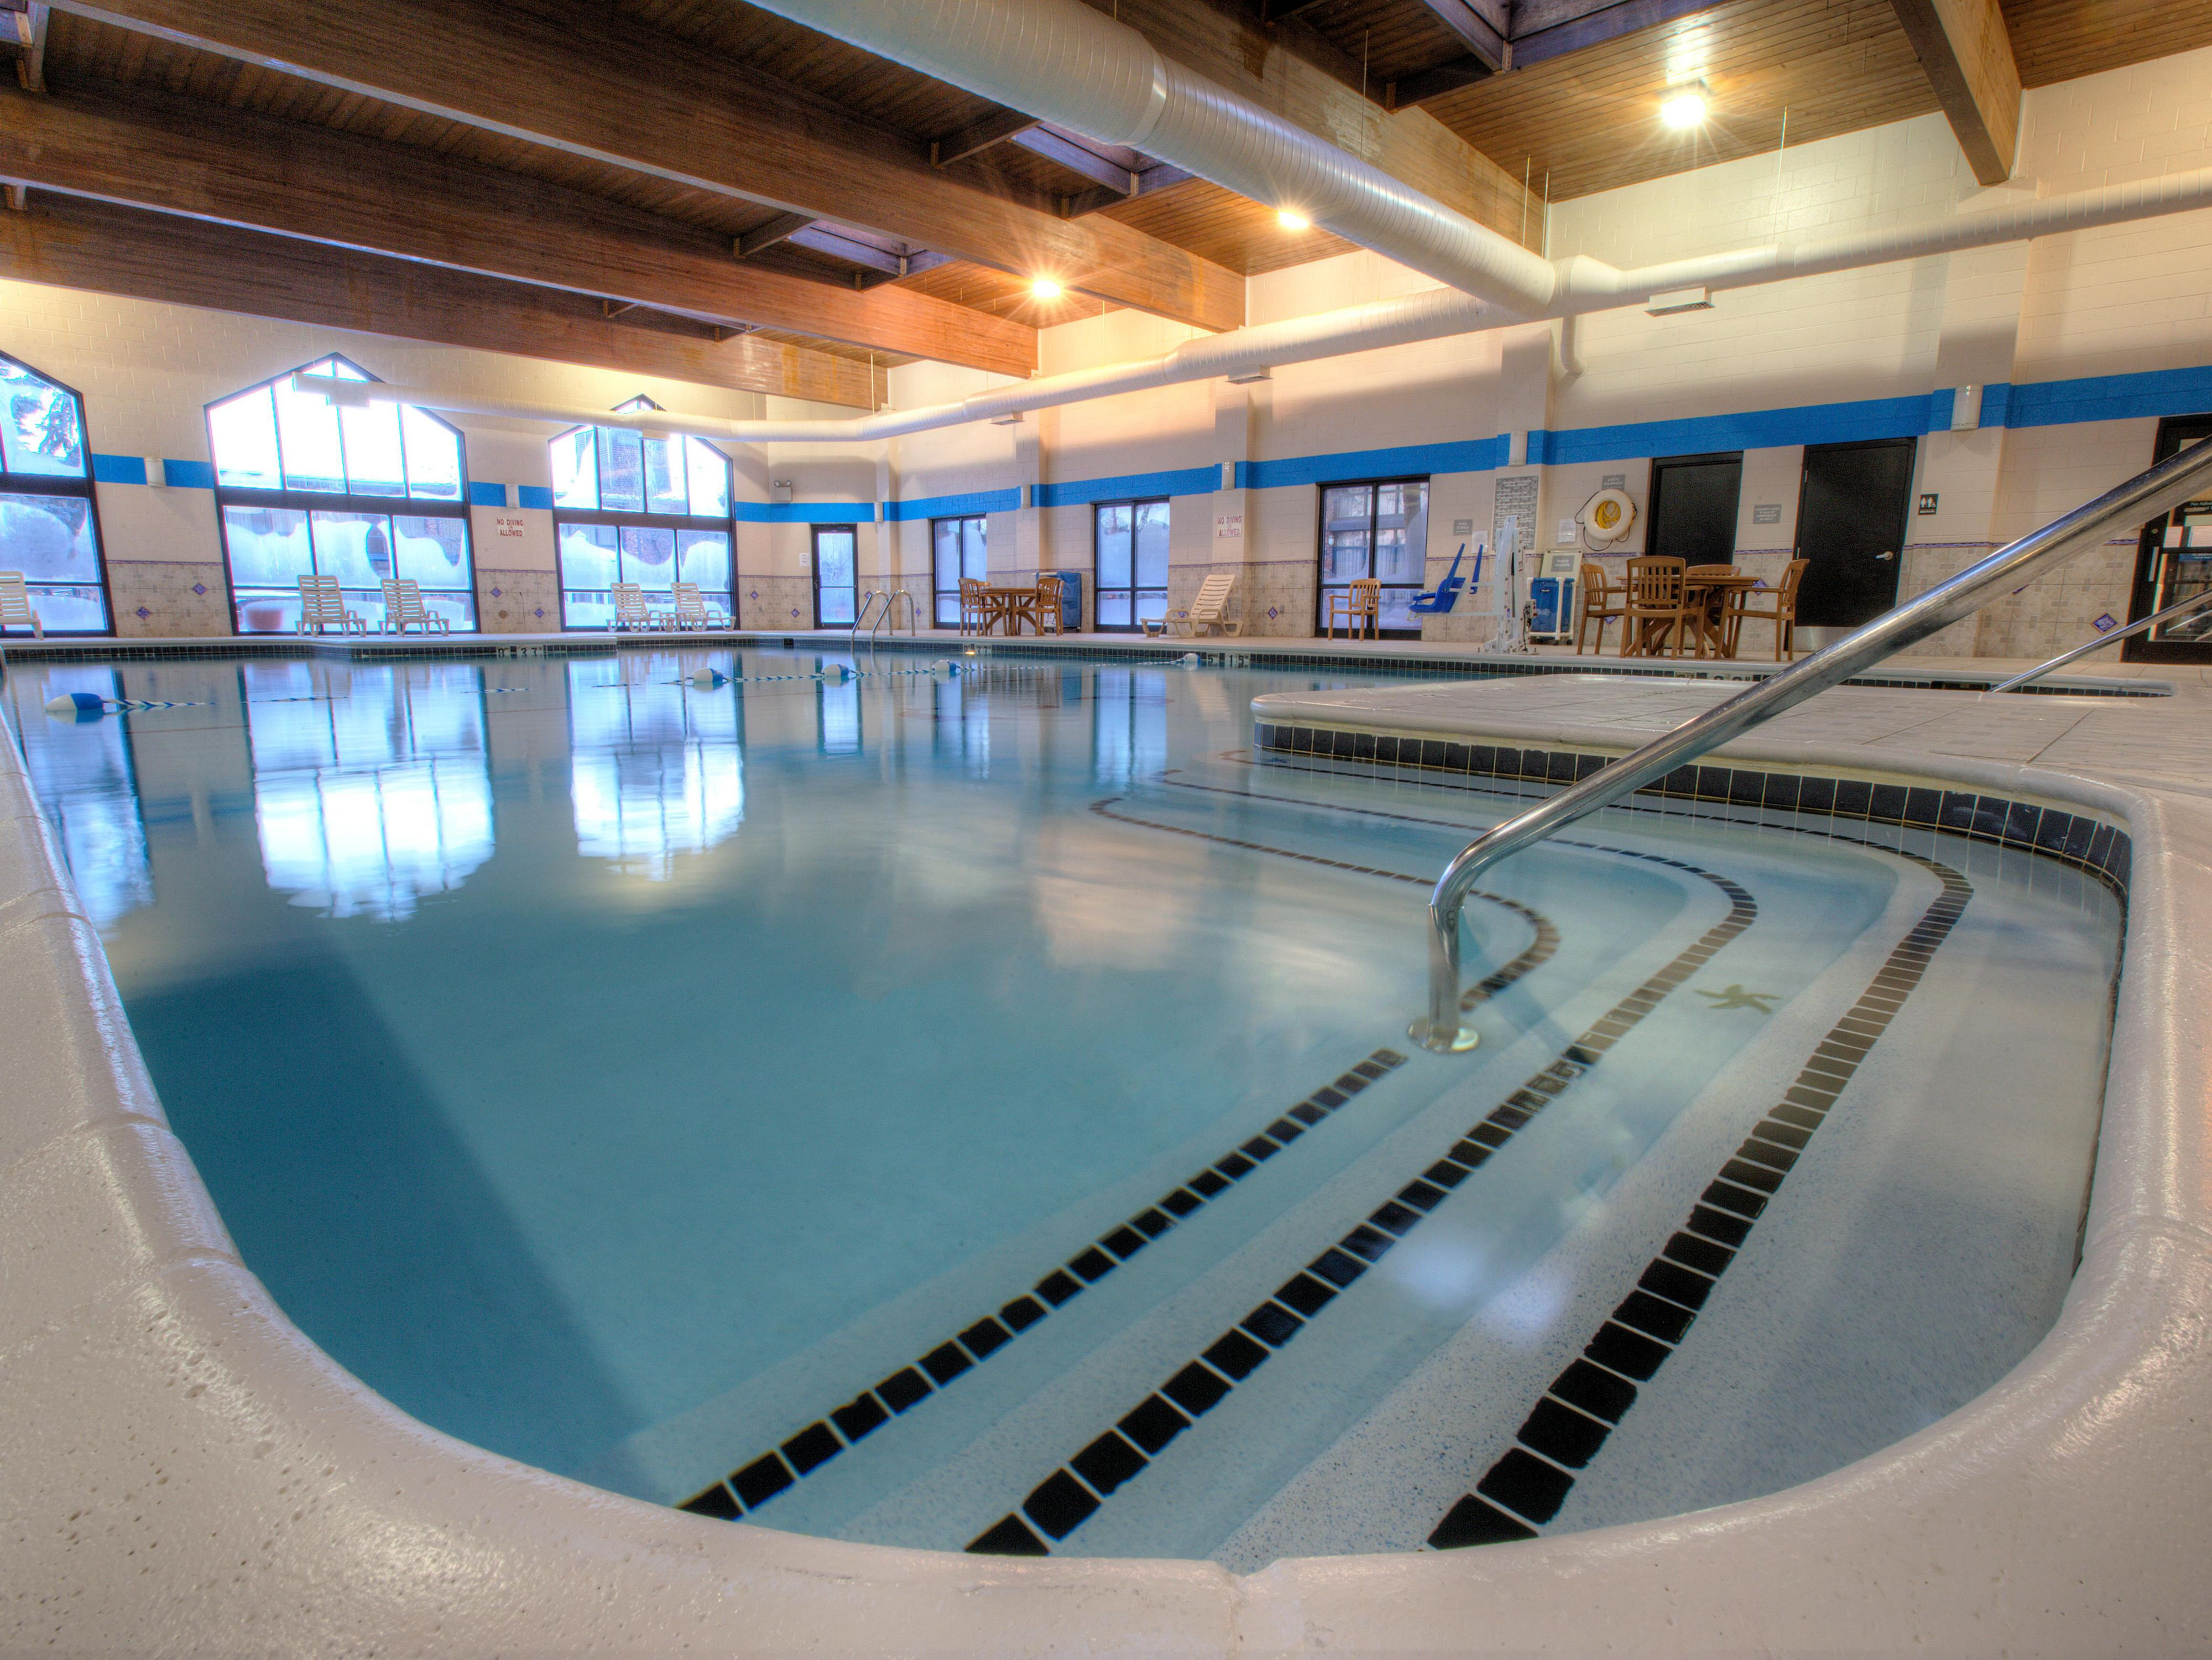 Downrivers largest indoor swimming pool!